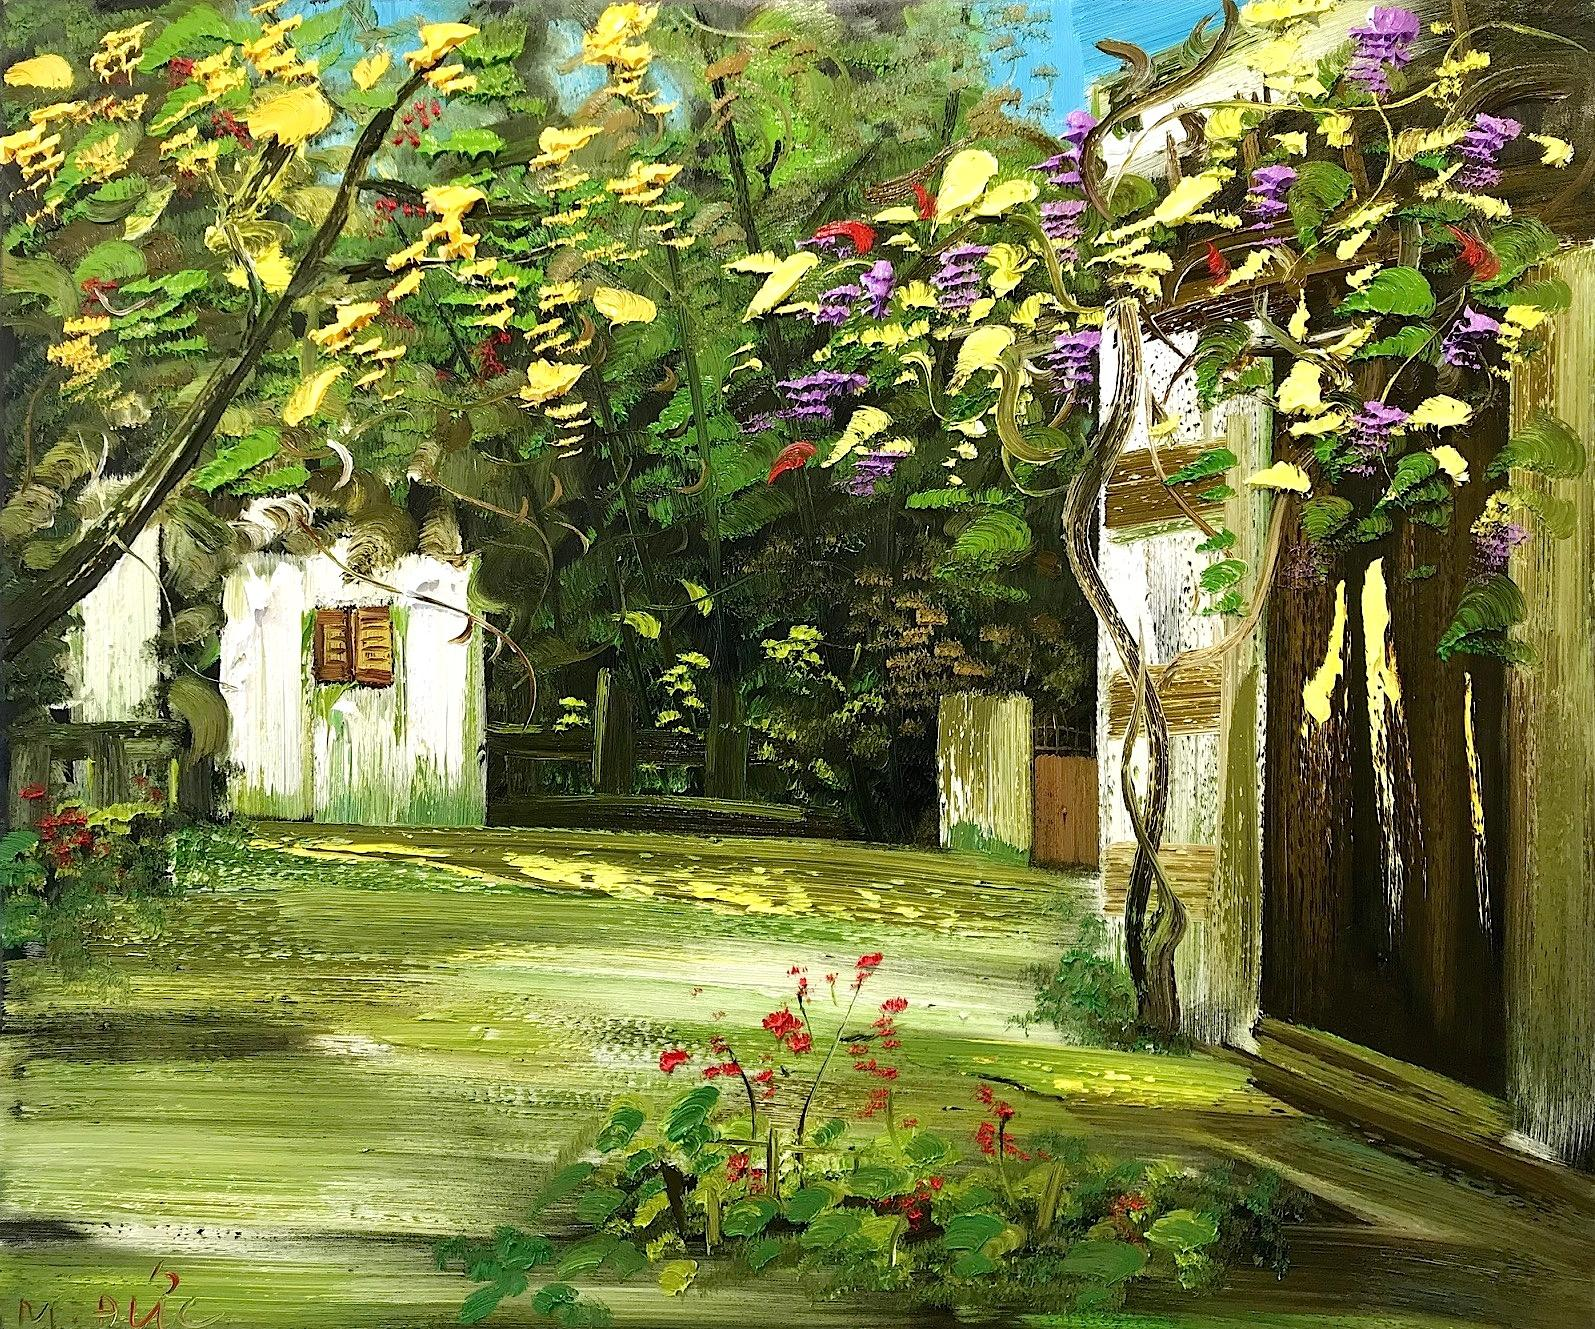 Around the corner 110x130 cm - Le Minh Duc - Luxembourg Art